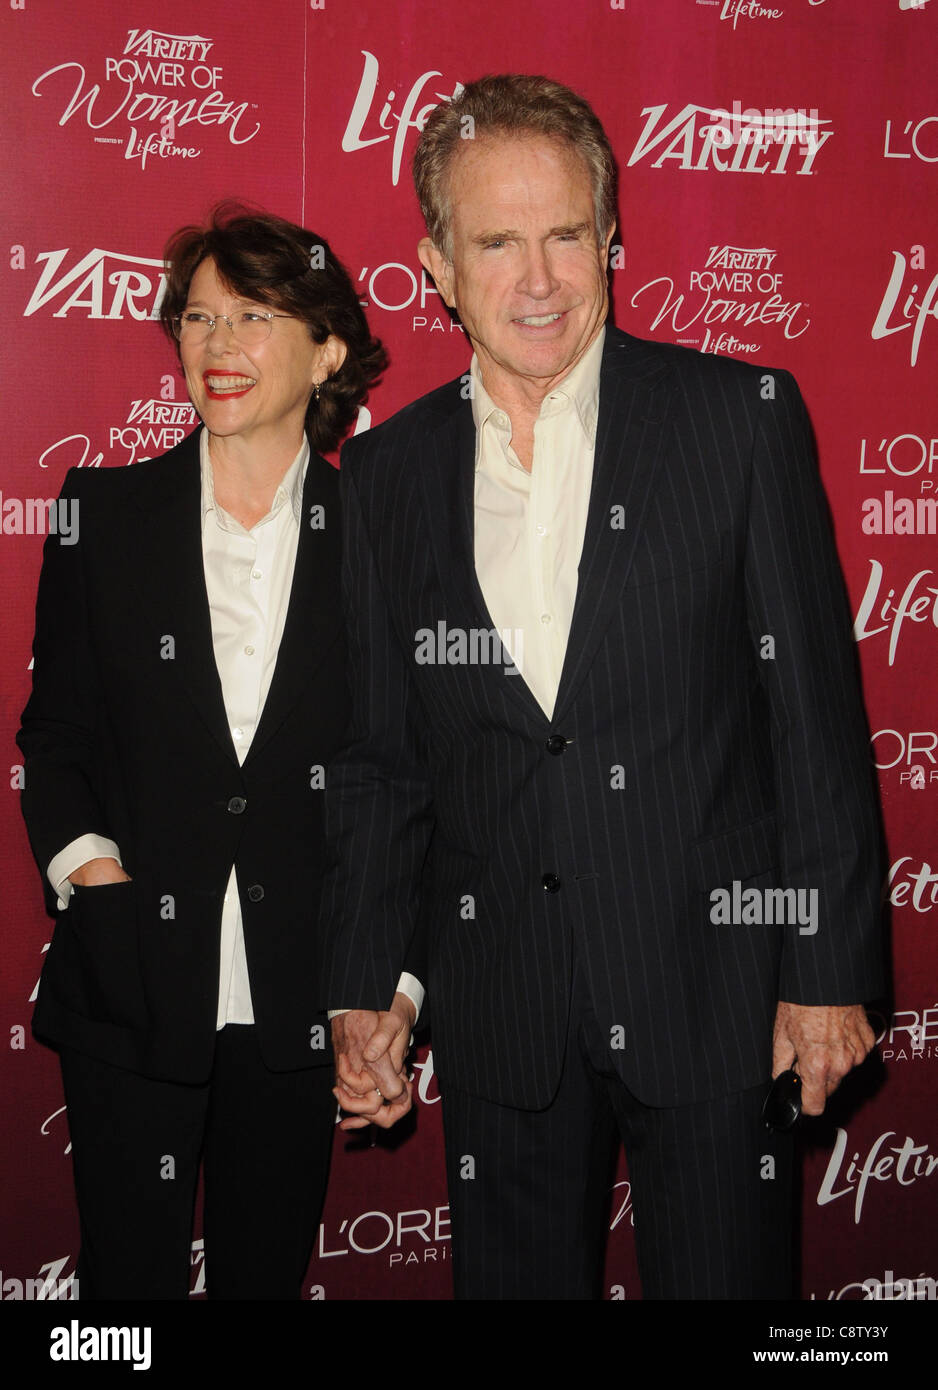 Annette Bening, Warren Beatty at arrivals for Variety's 3rd Annual Power of Women Luncheon, Beverly Wilshire - Stock Image